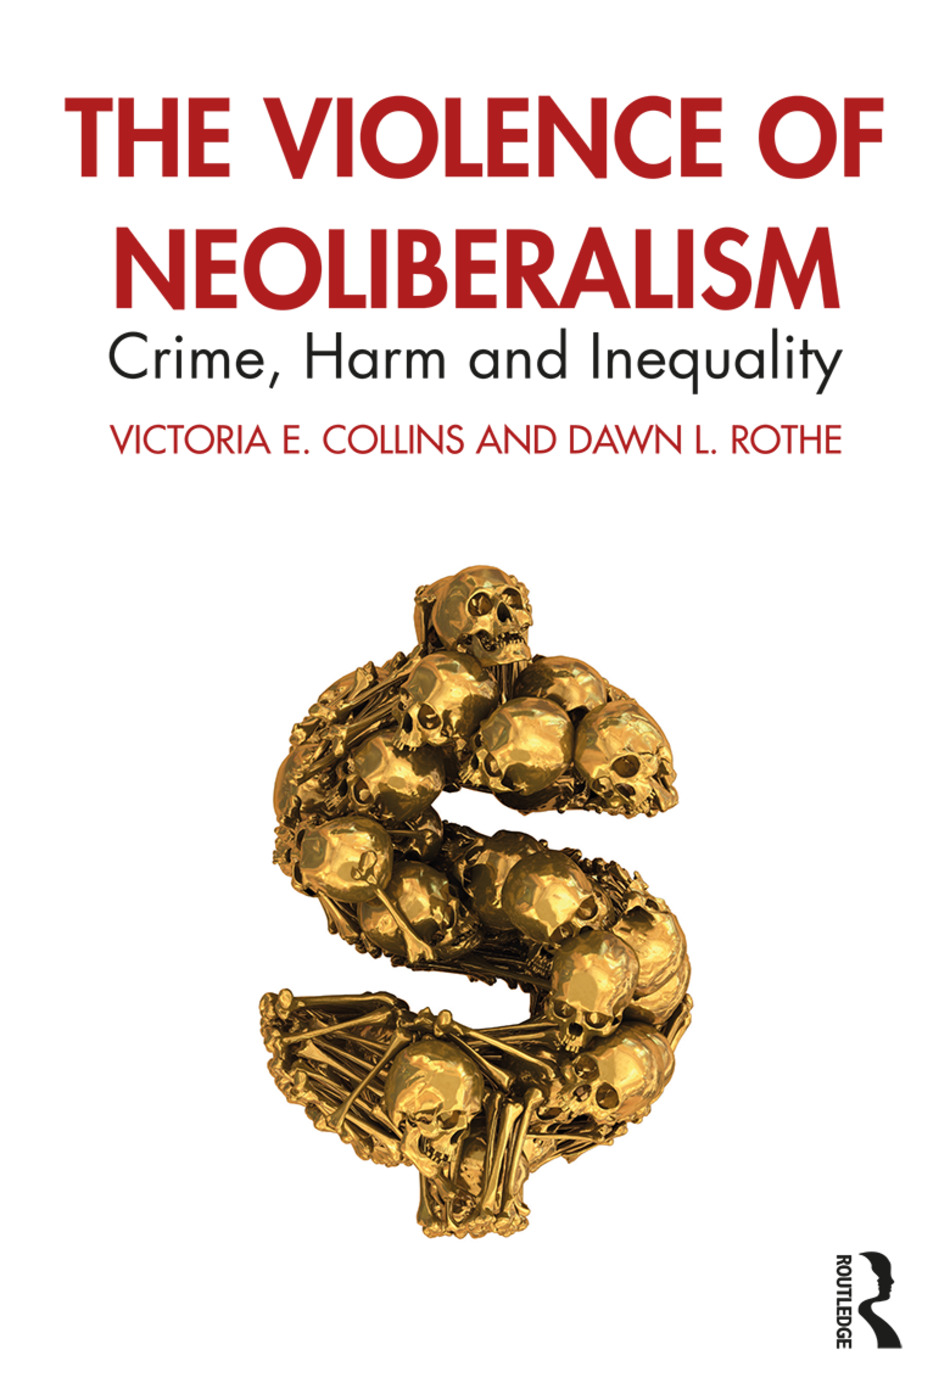 The Violence of Neoliberalism: Crime, Harm and Inequality book cover